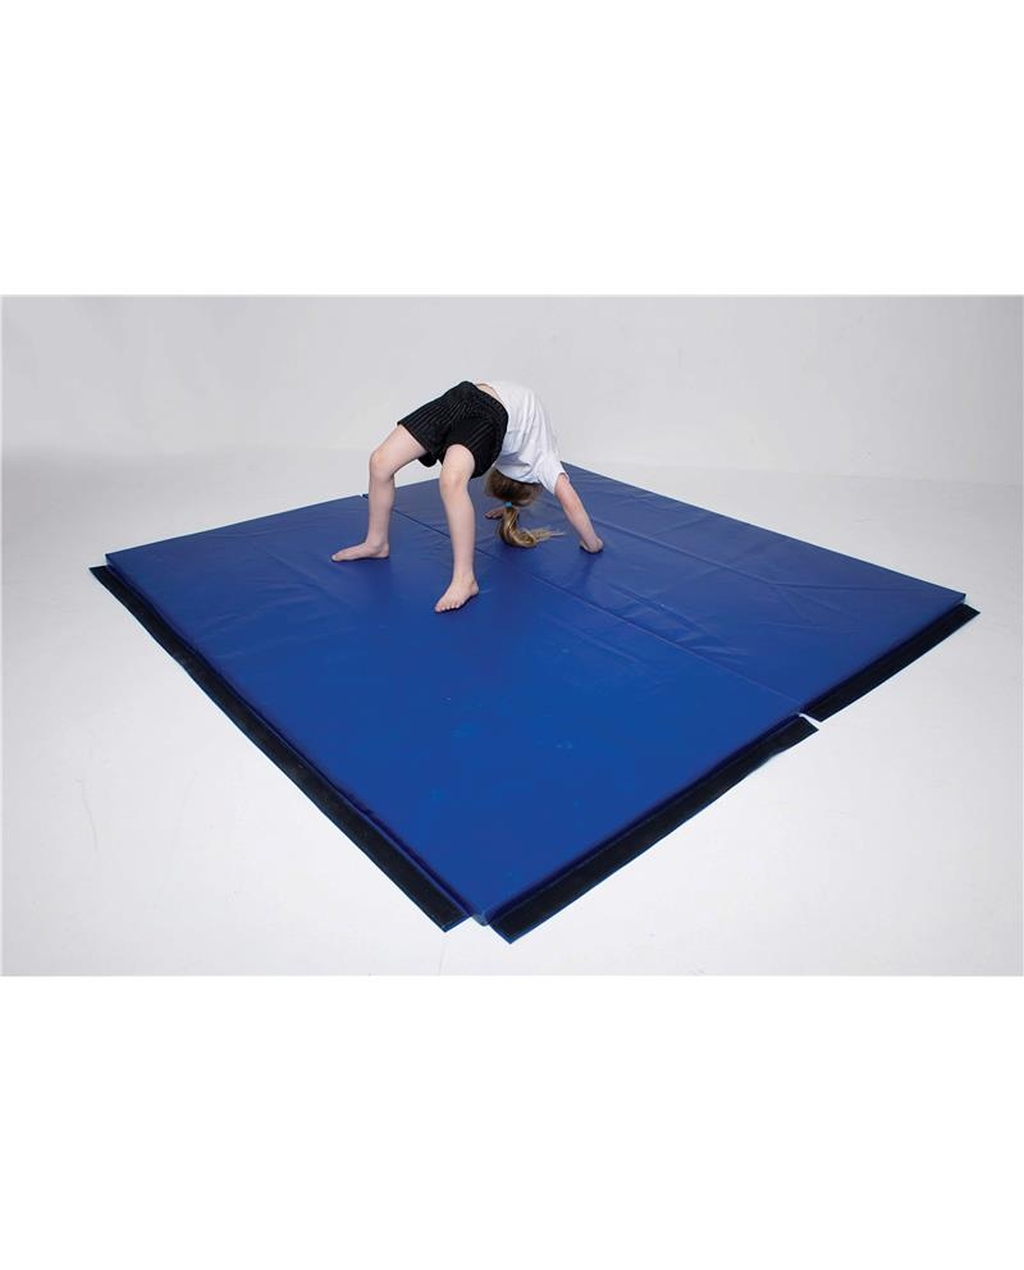 HEAVY DUTY LIGHTWEIGHT MAT W/ VELCRO LINK 2m x 1m x 50mm